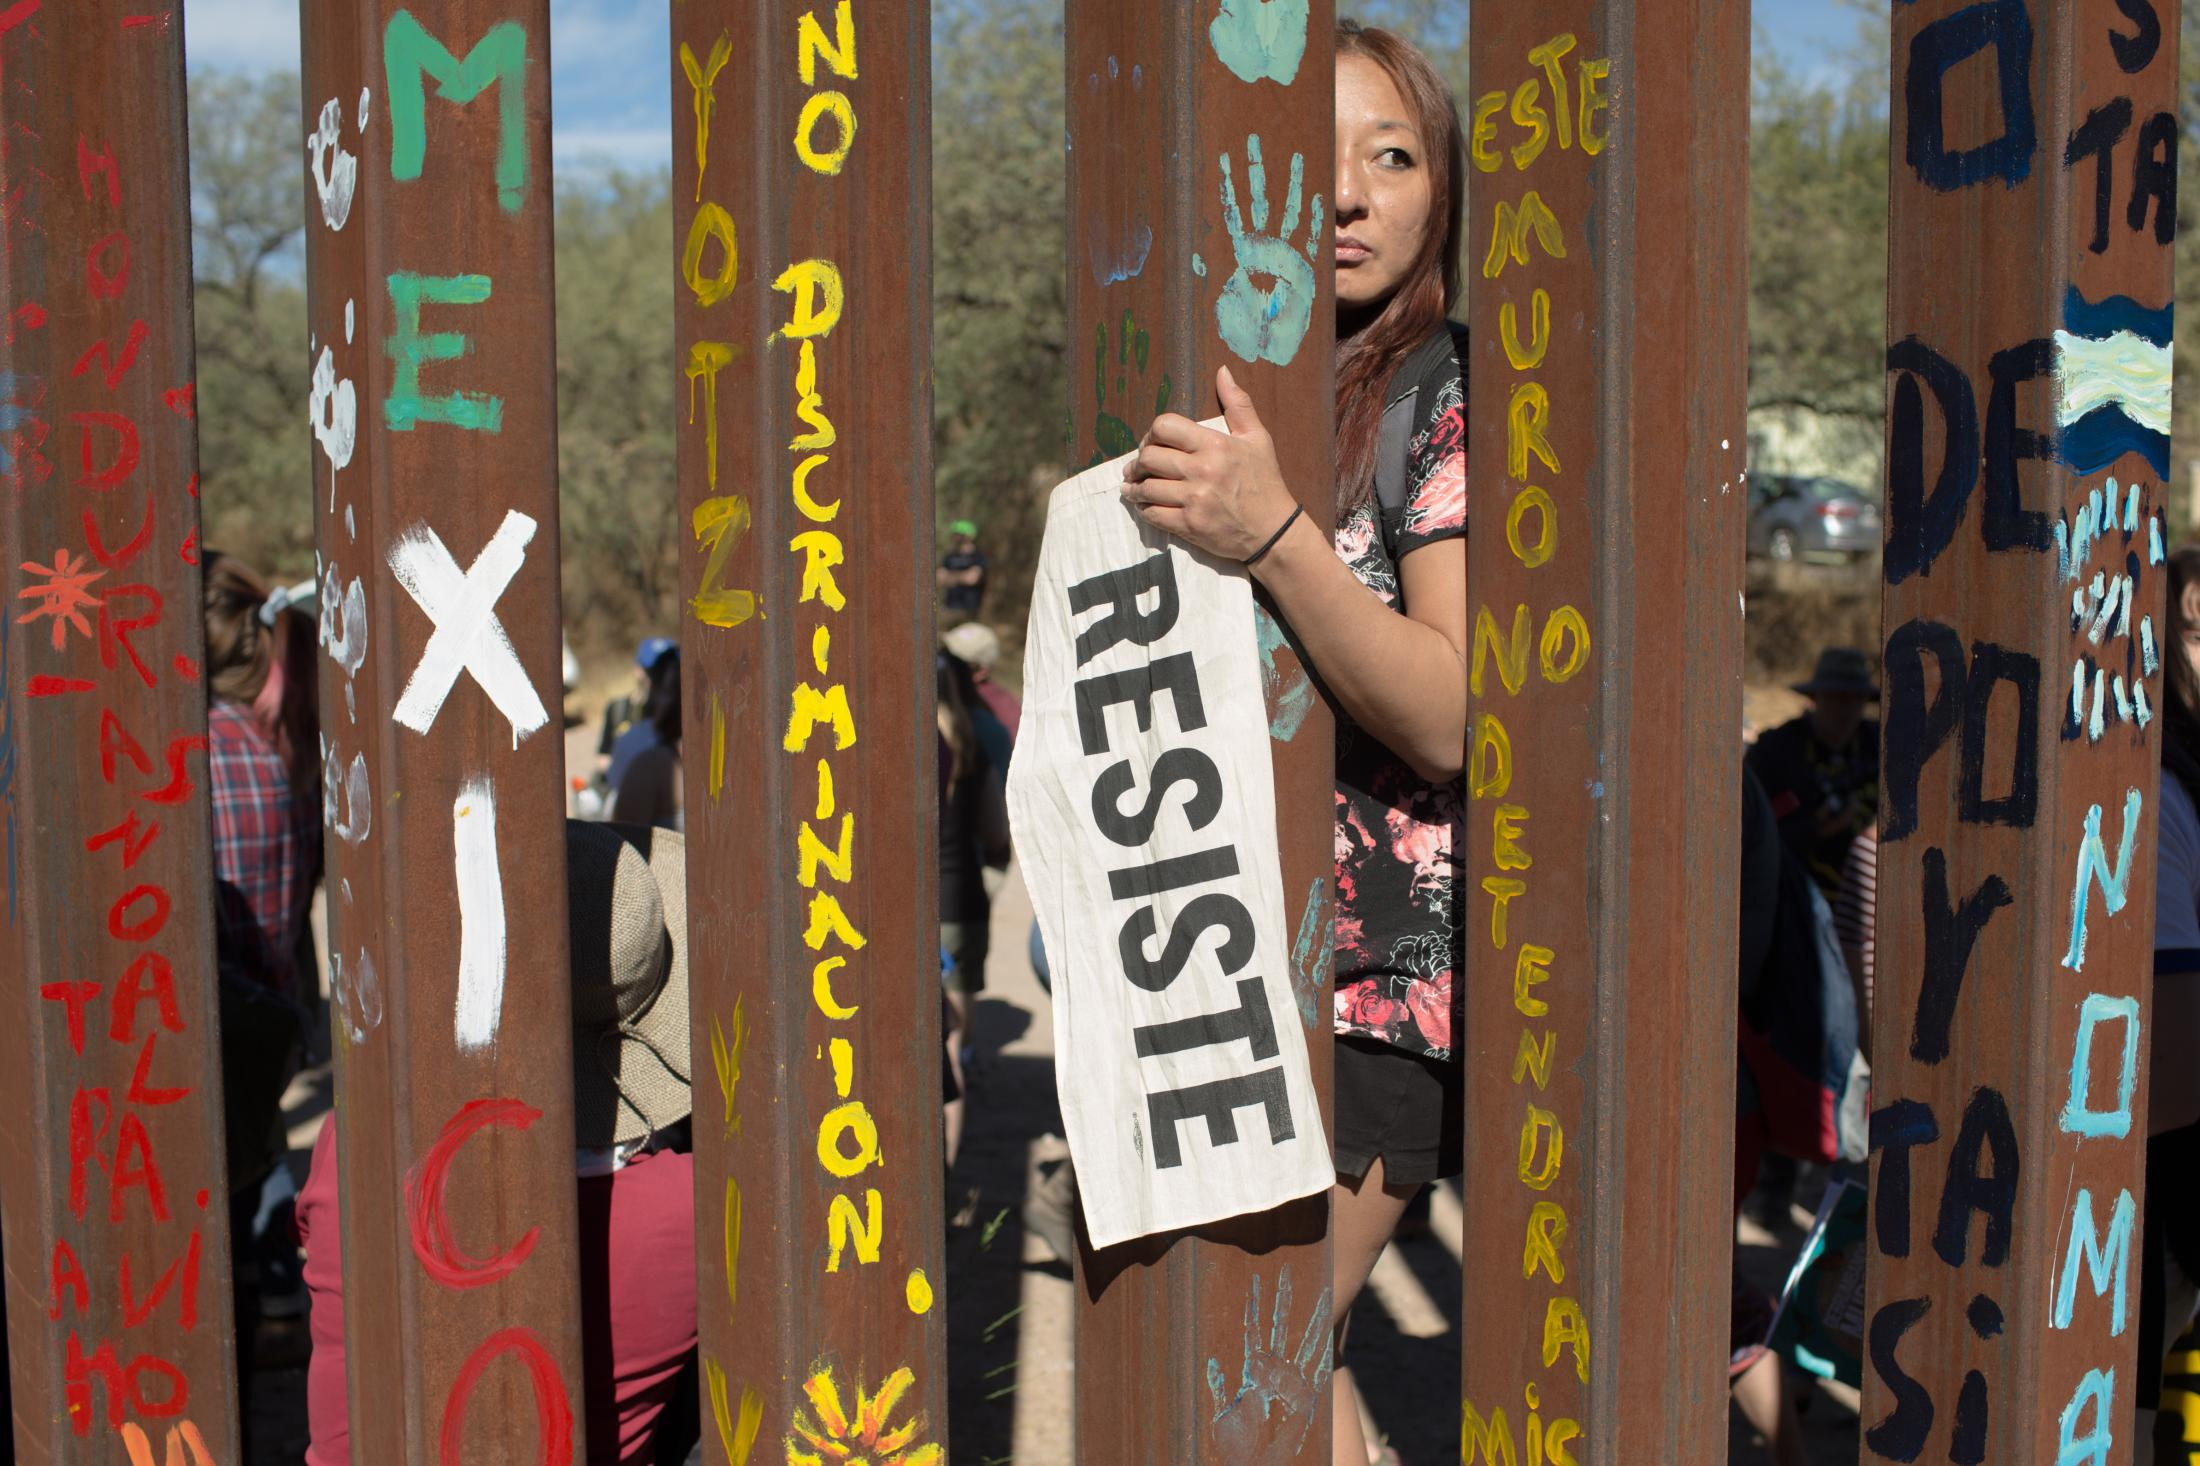 A protester holding a sign that says resist in Spanish stands on the United States side of the border wall that separates Nogales, Sonora and Nogales, Arizona during the SOA Watch Border Encuentro 2017 on November 11, 2017.